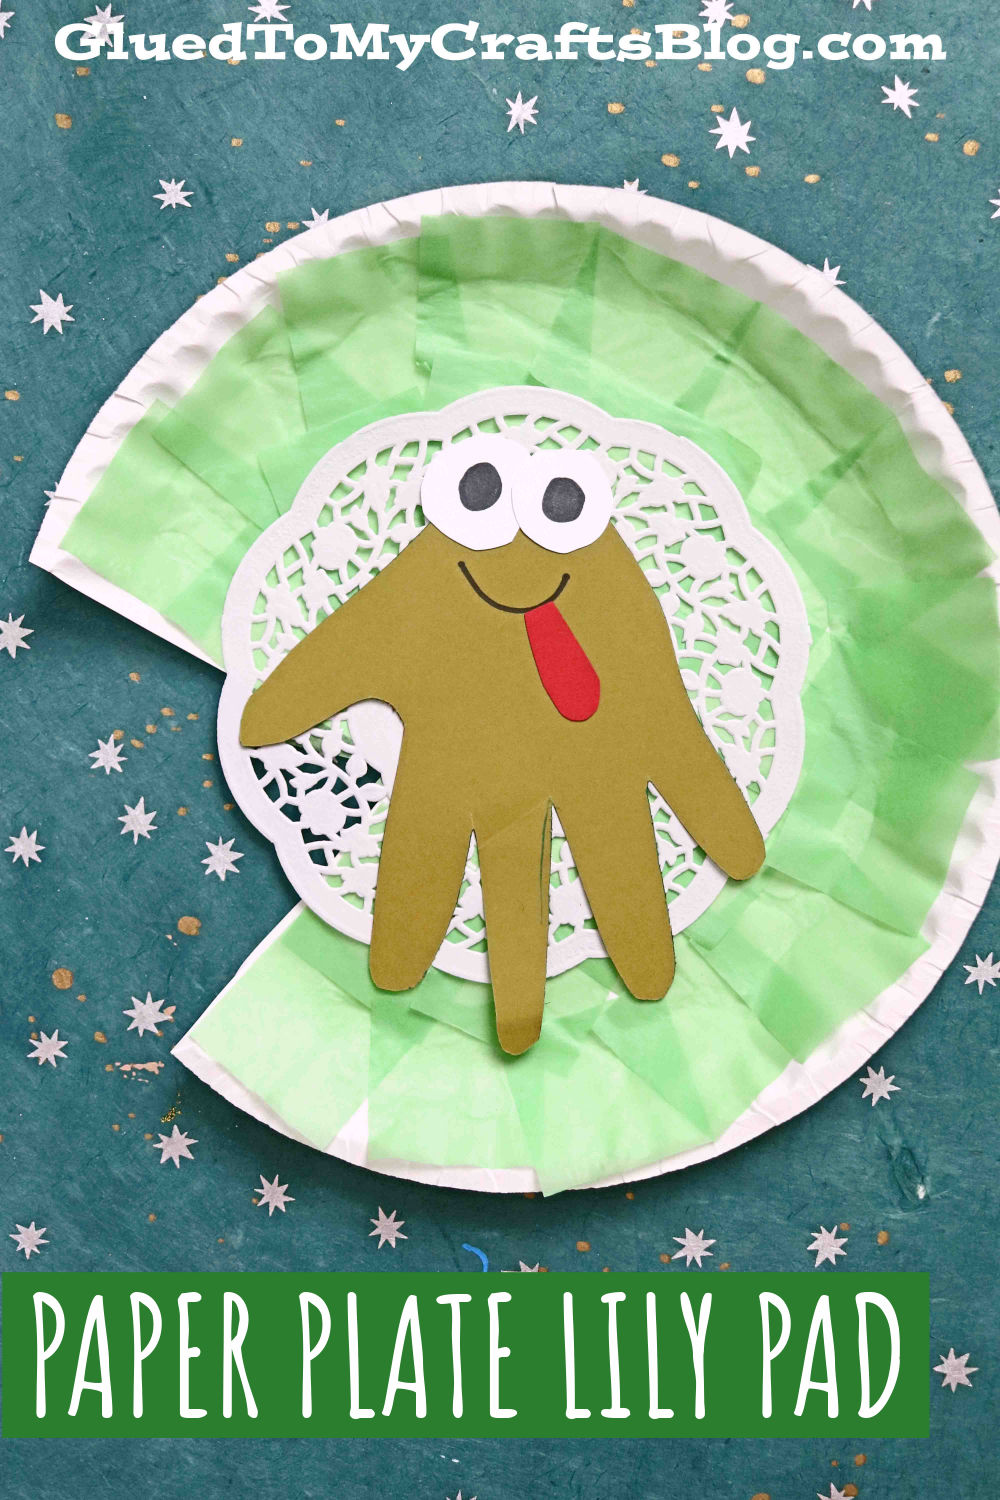 Paper Plate Lily Pad w/Handprint Frog - Kid Craft